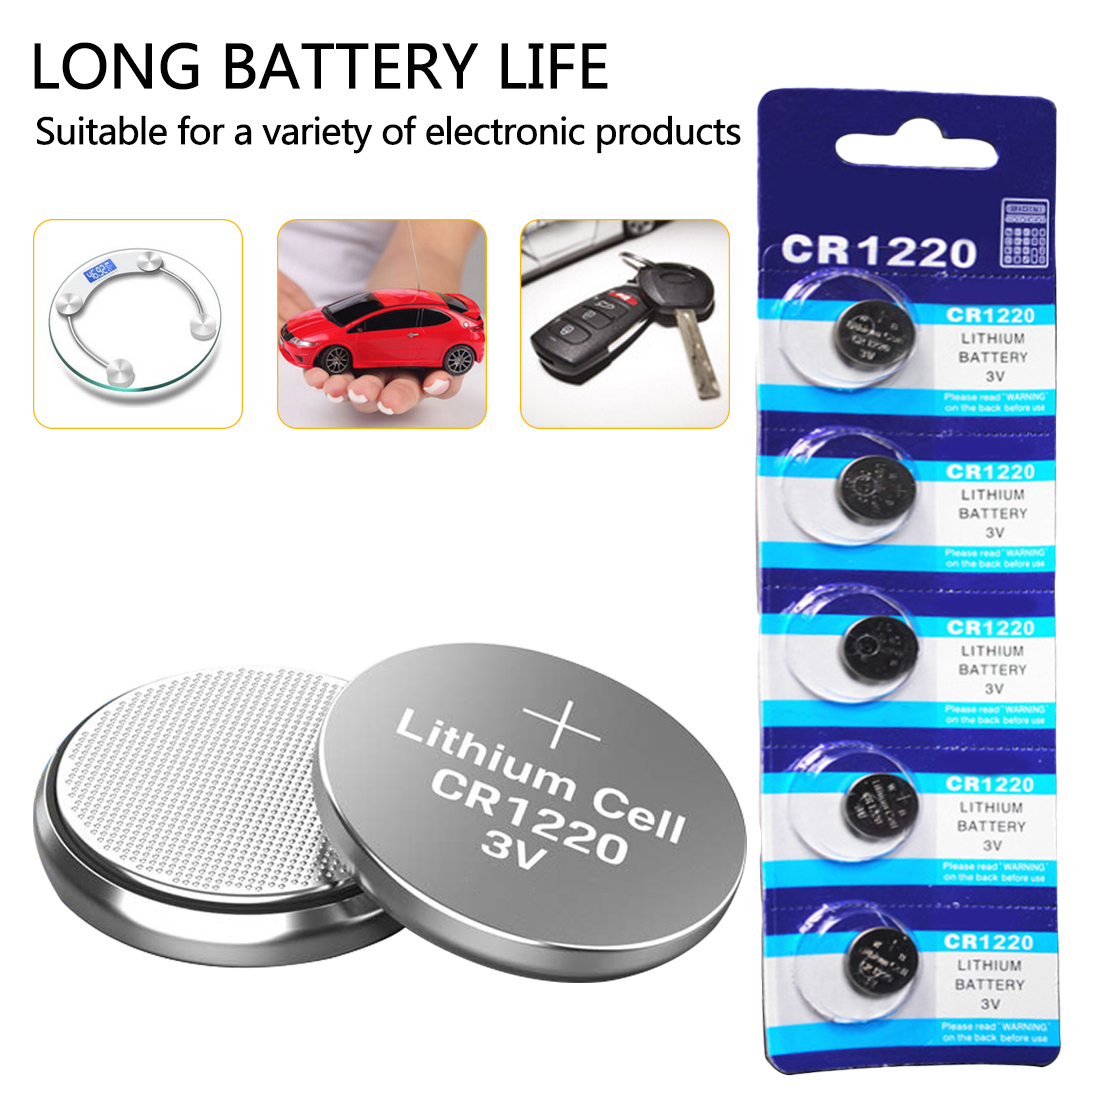 10PCS CR1220 Alkaline Button Battery Lithium Coin Cell 3V DL1220 BR1220 LM1220 for Watch Toy Remote control